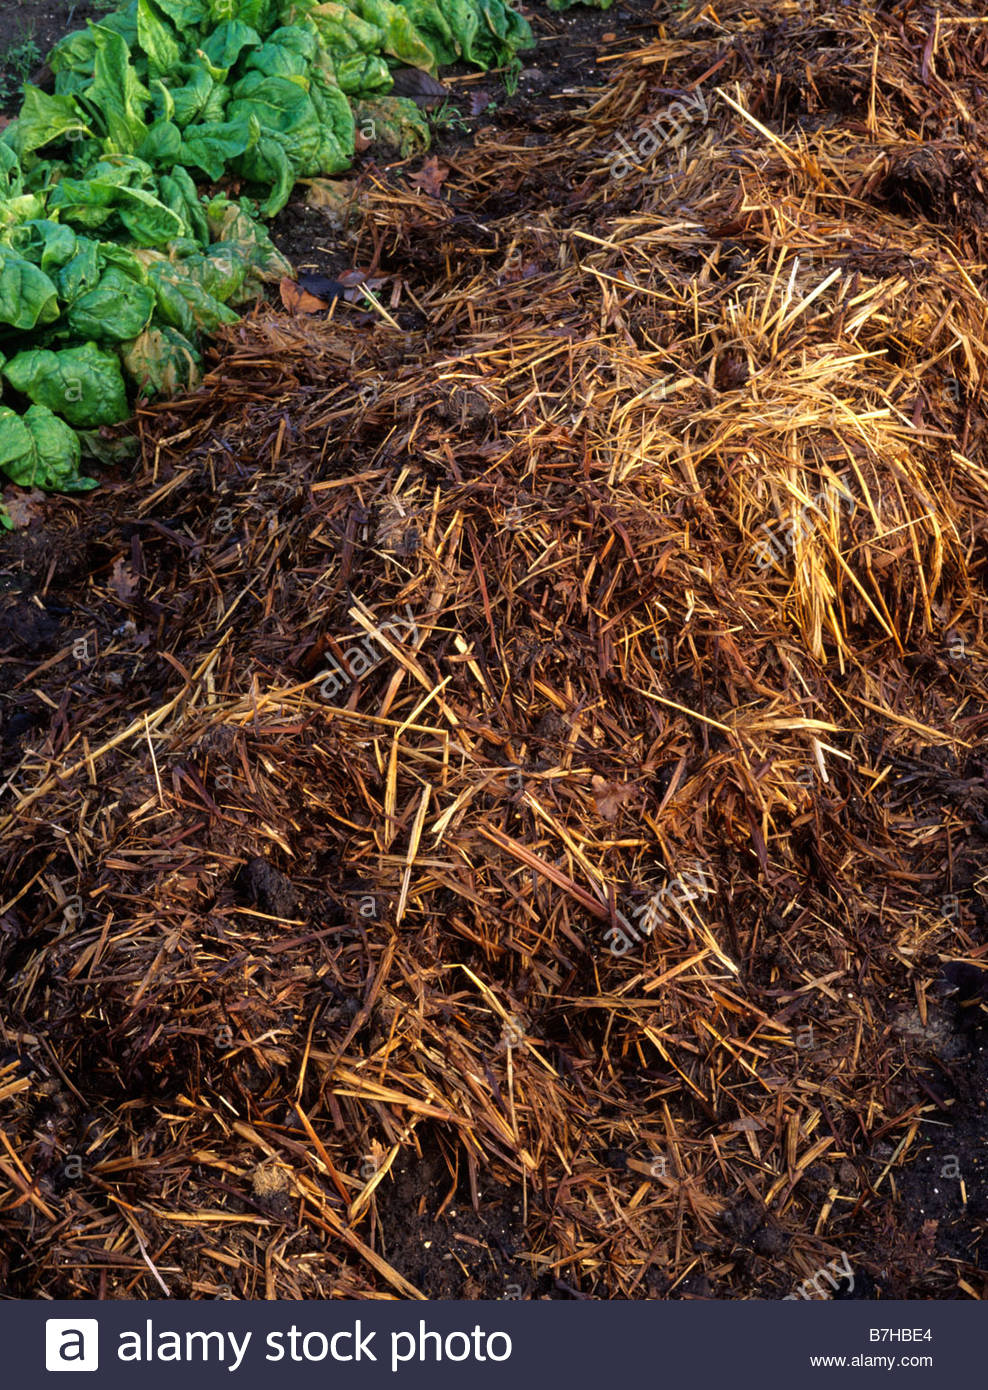 Mulch Of Horse Manure   Stock Image